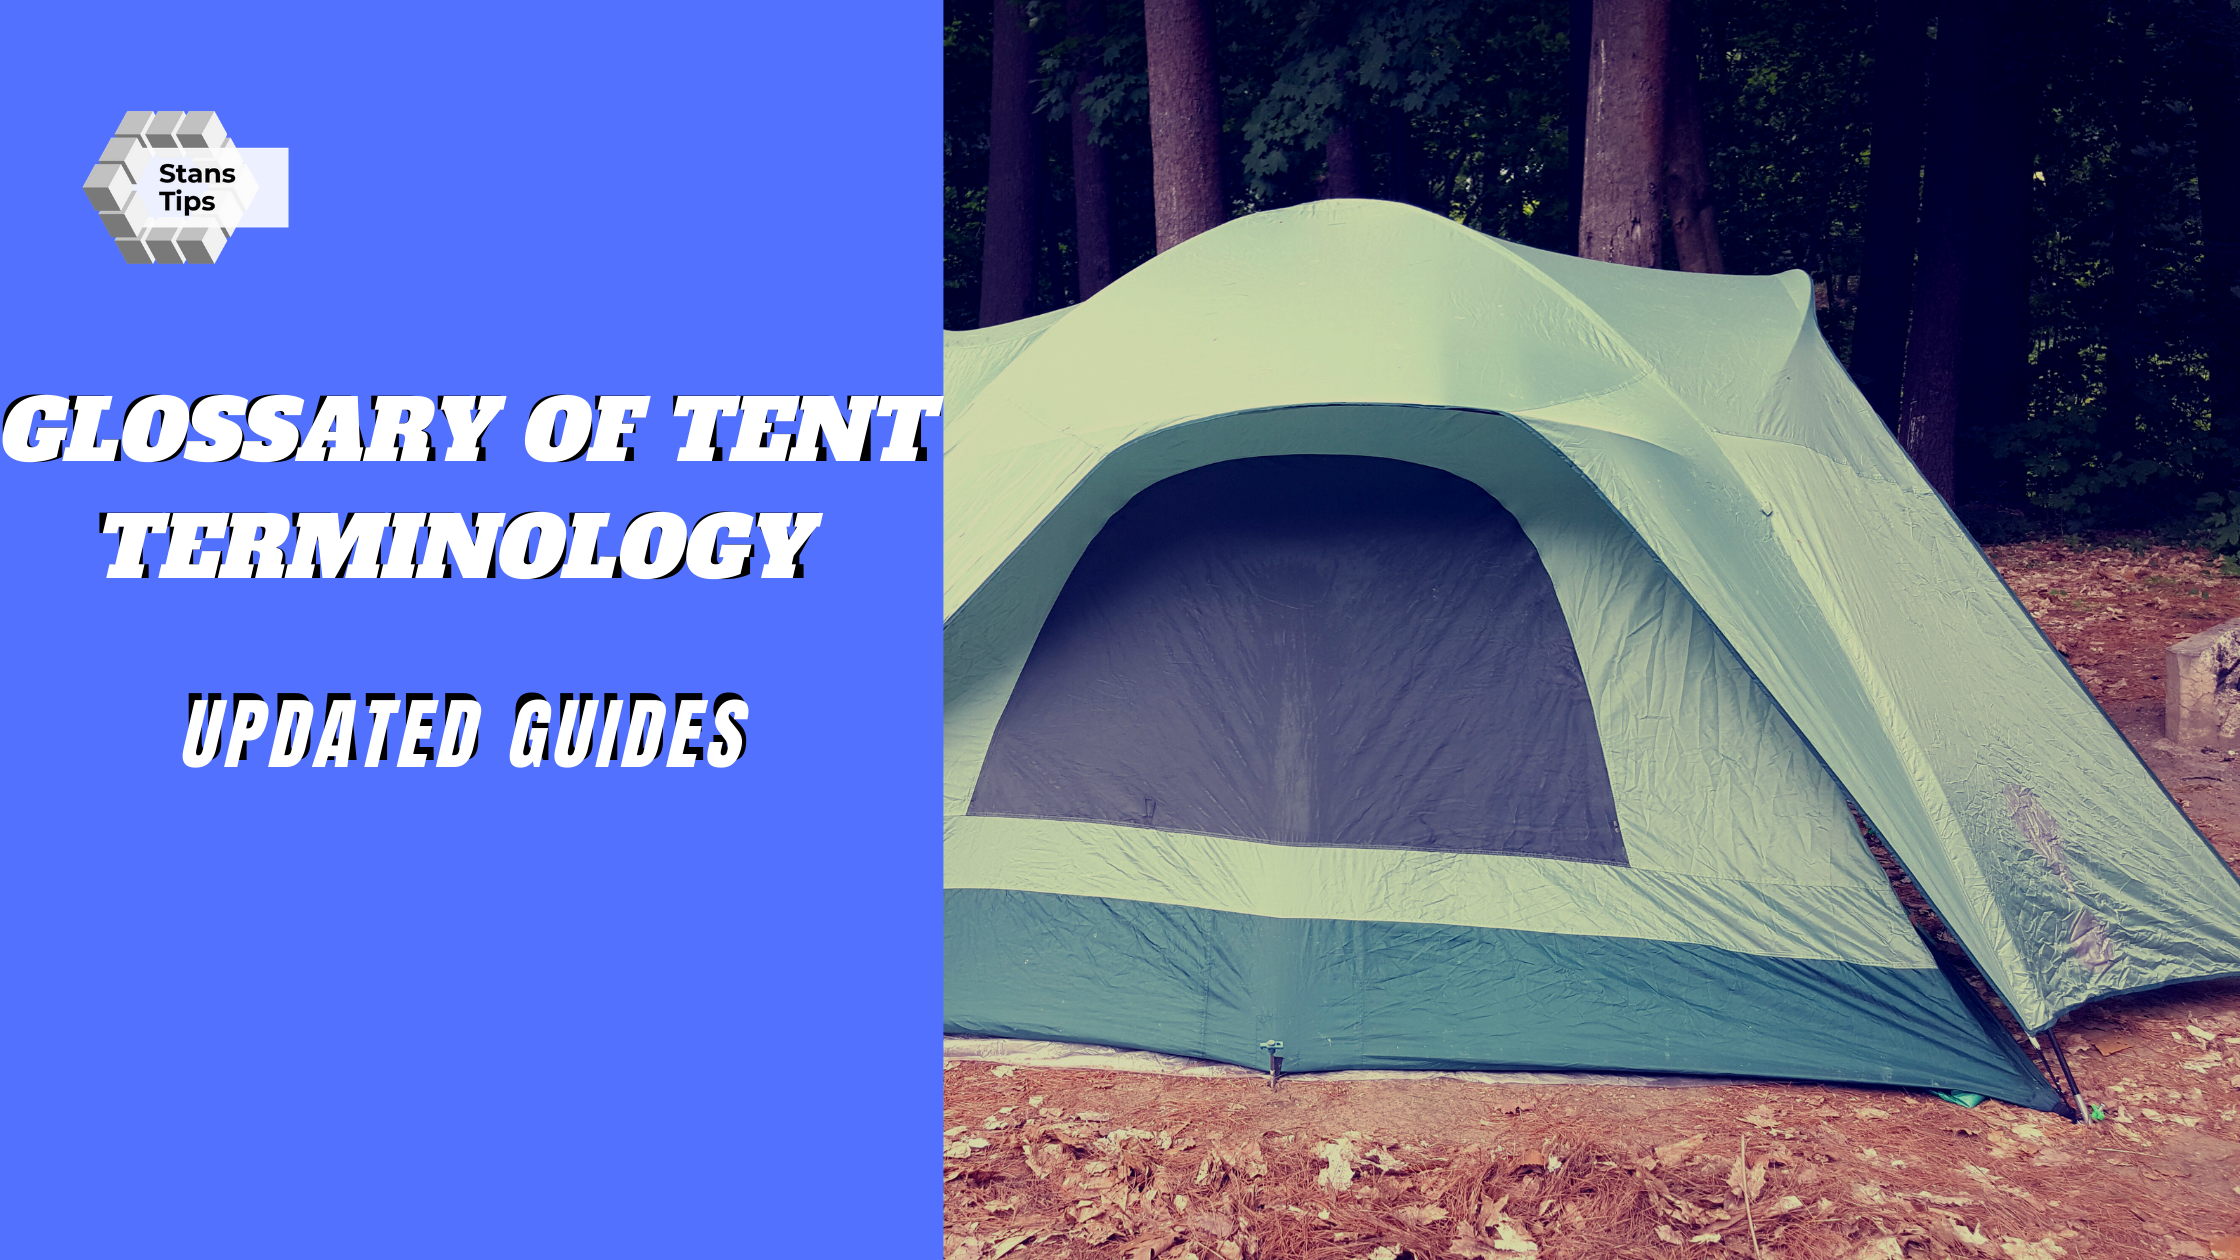 Glossary of tent terminology 2021 updated